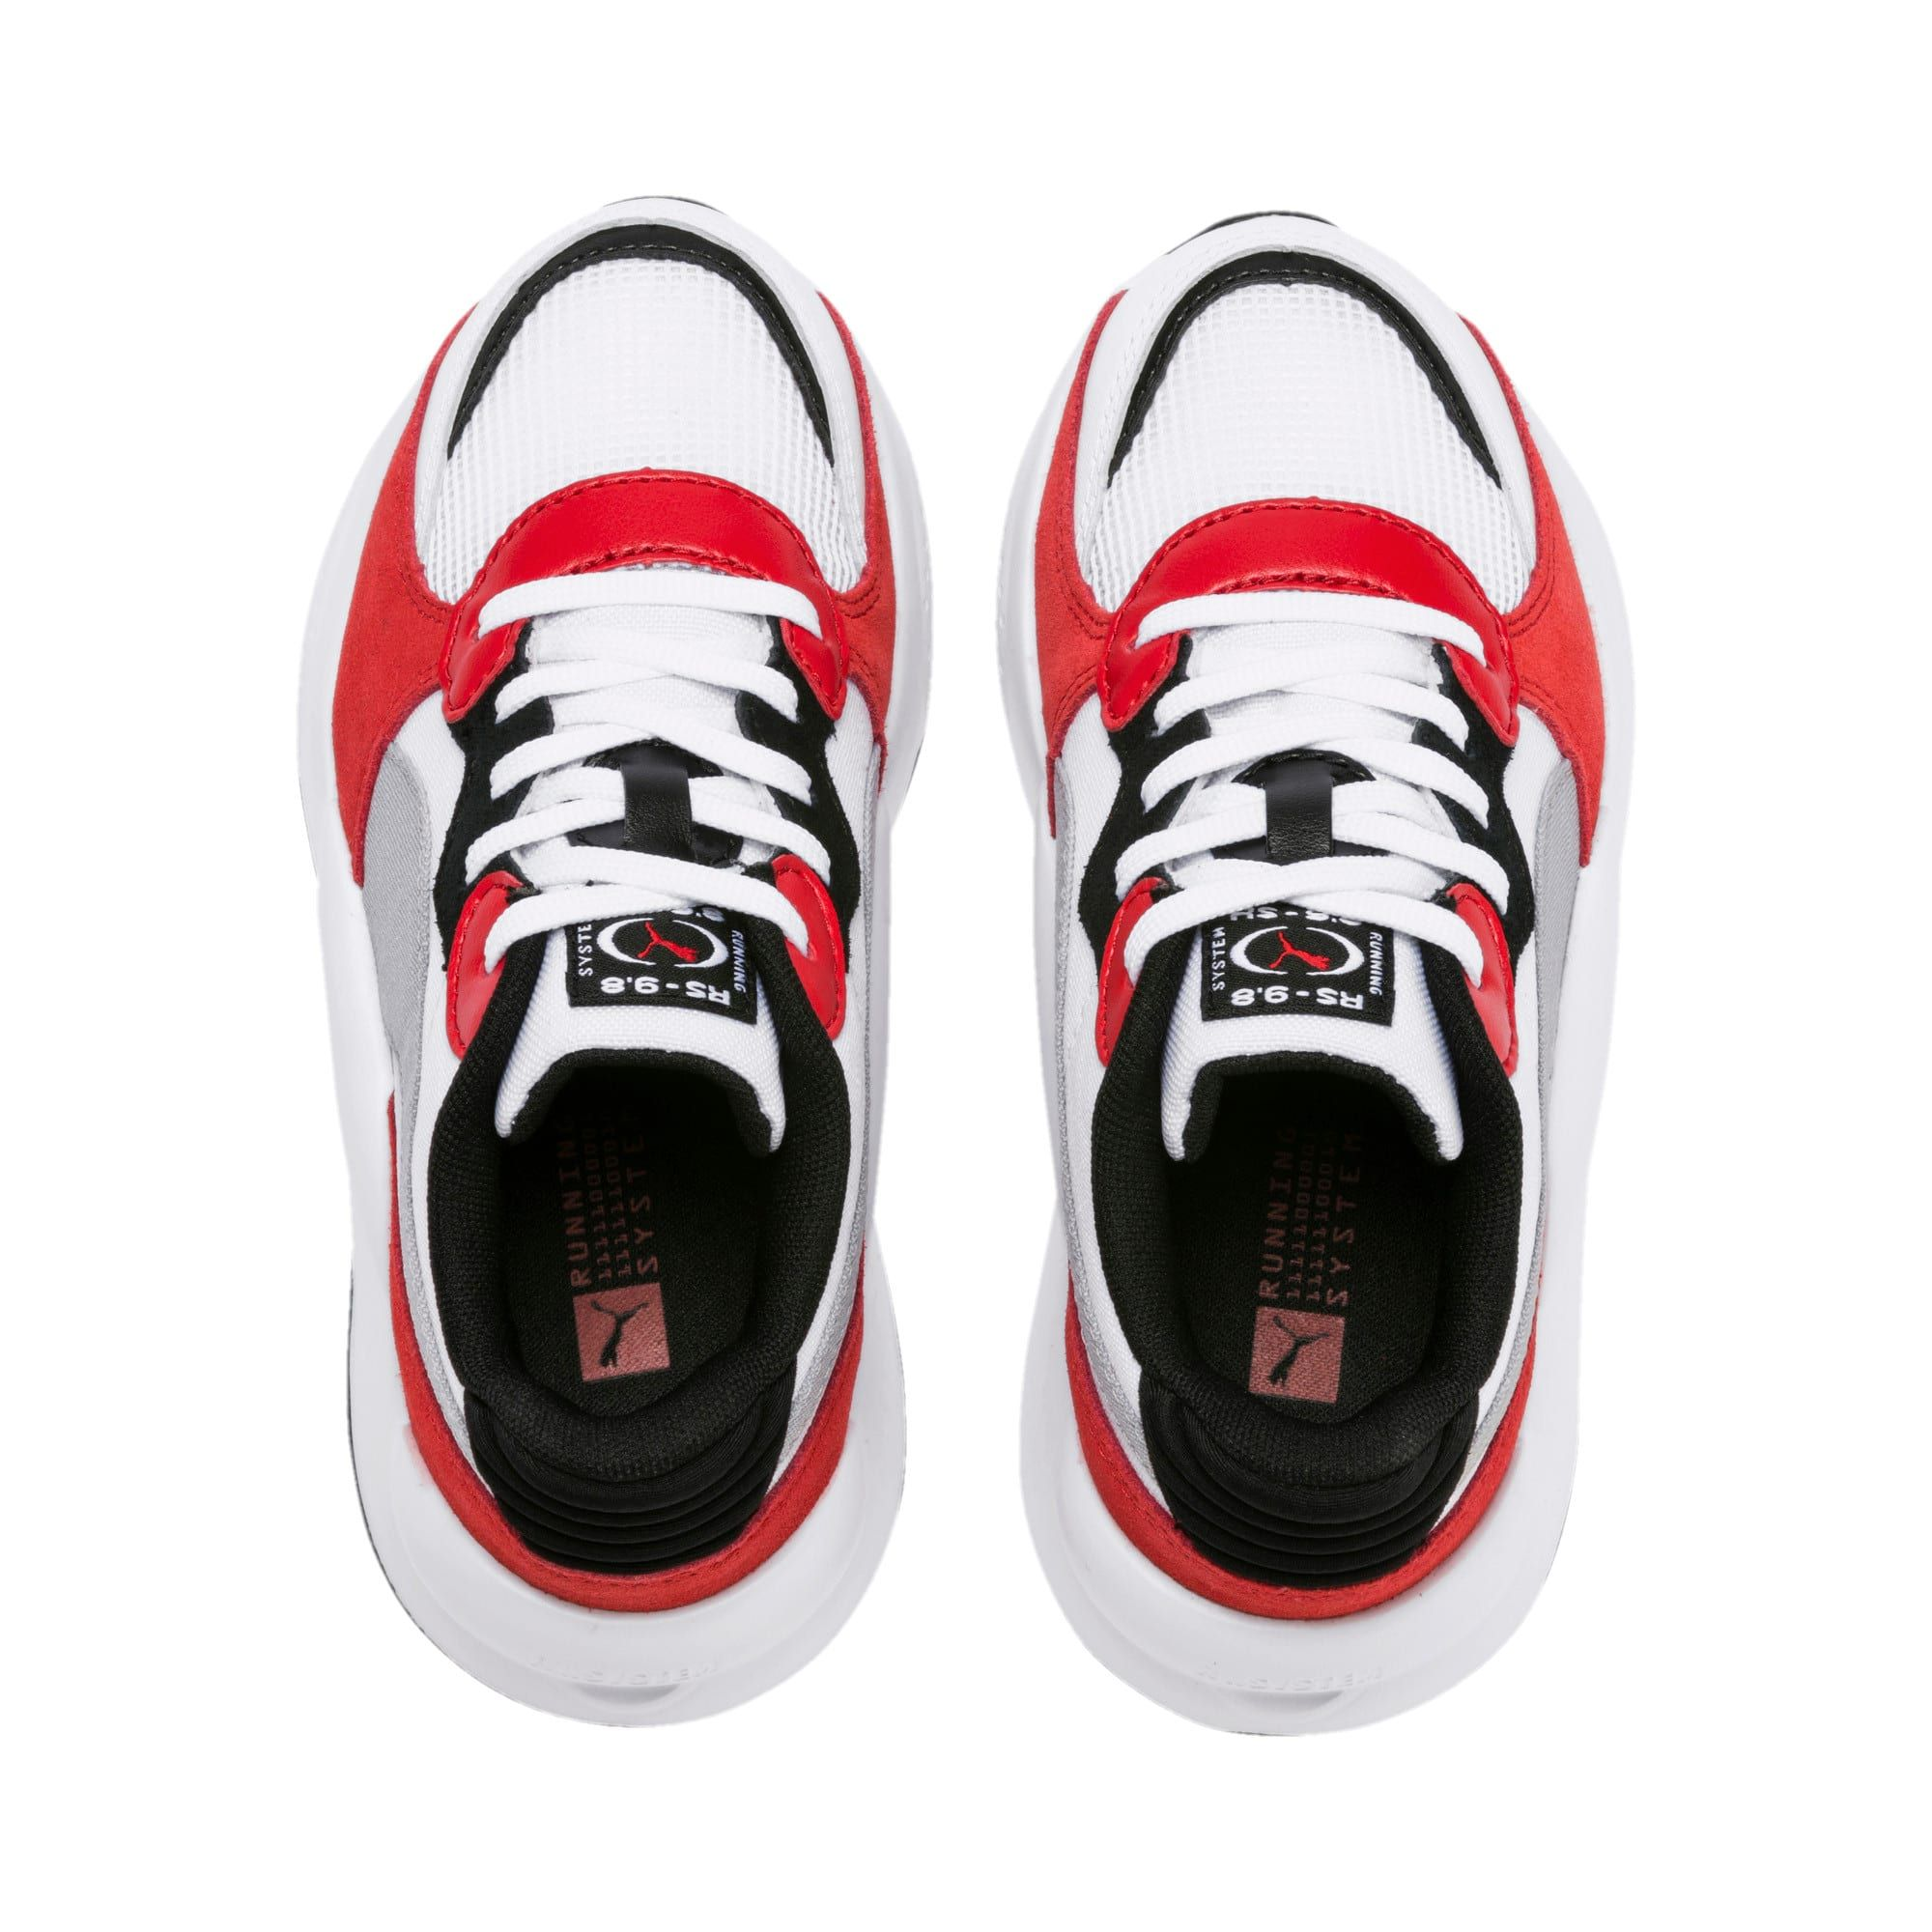 RS 9.8 Space Kids' Trainers | Puma White-High Risk Red | PUMA RS 9.8 Collection | PUMA United Kingdom #highsandals